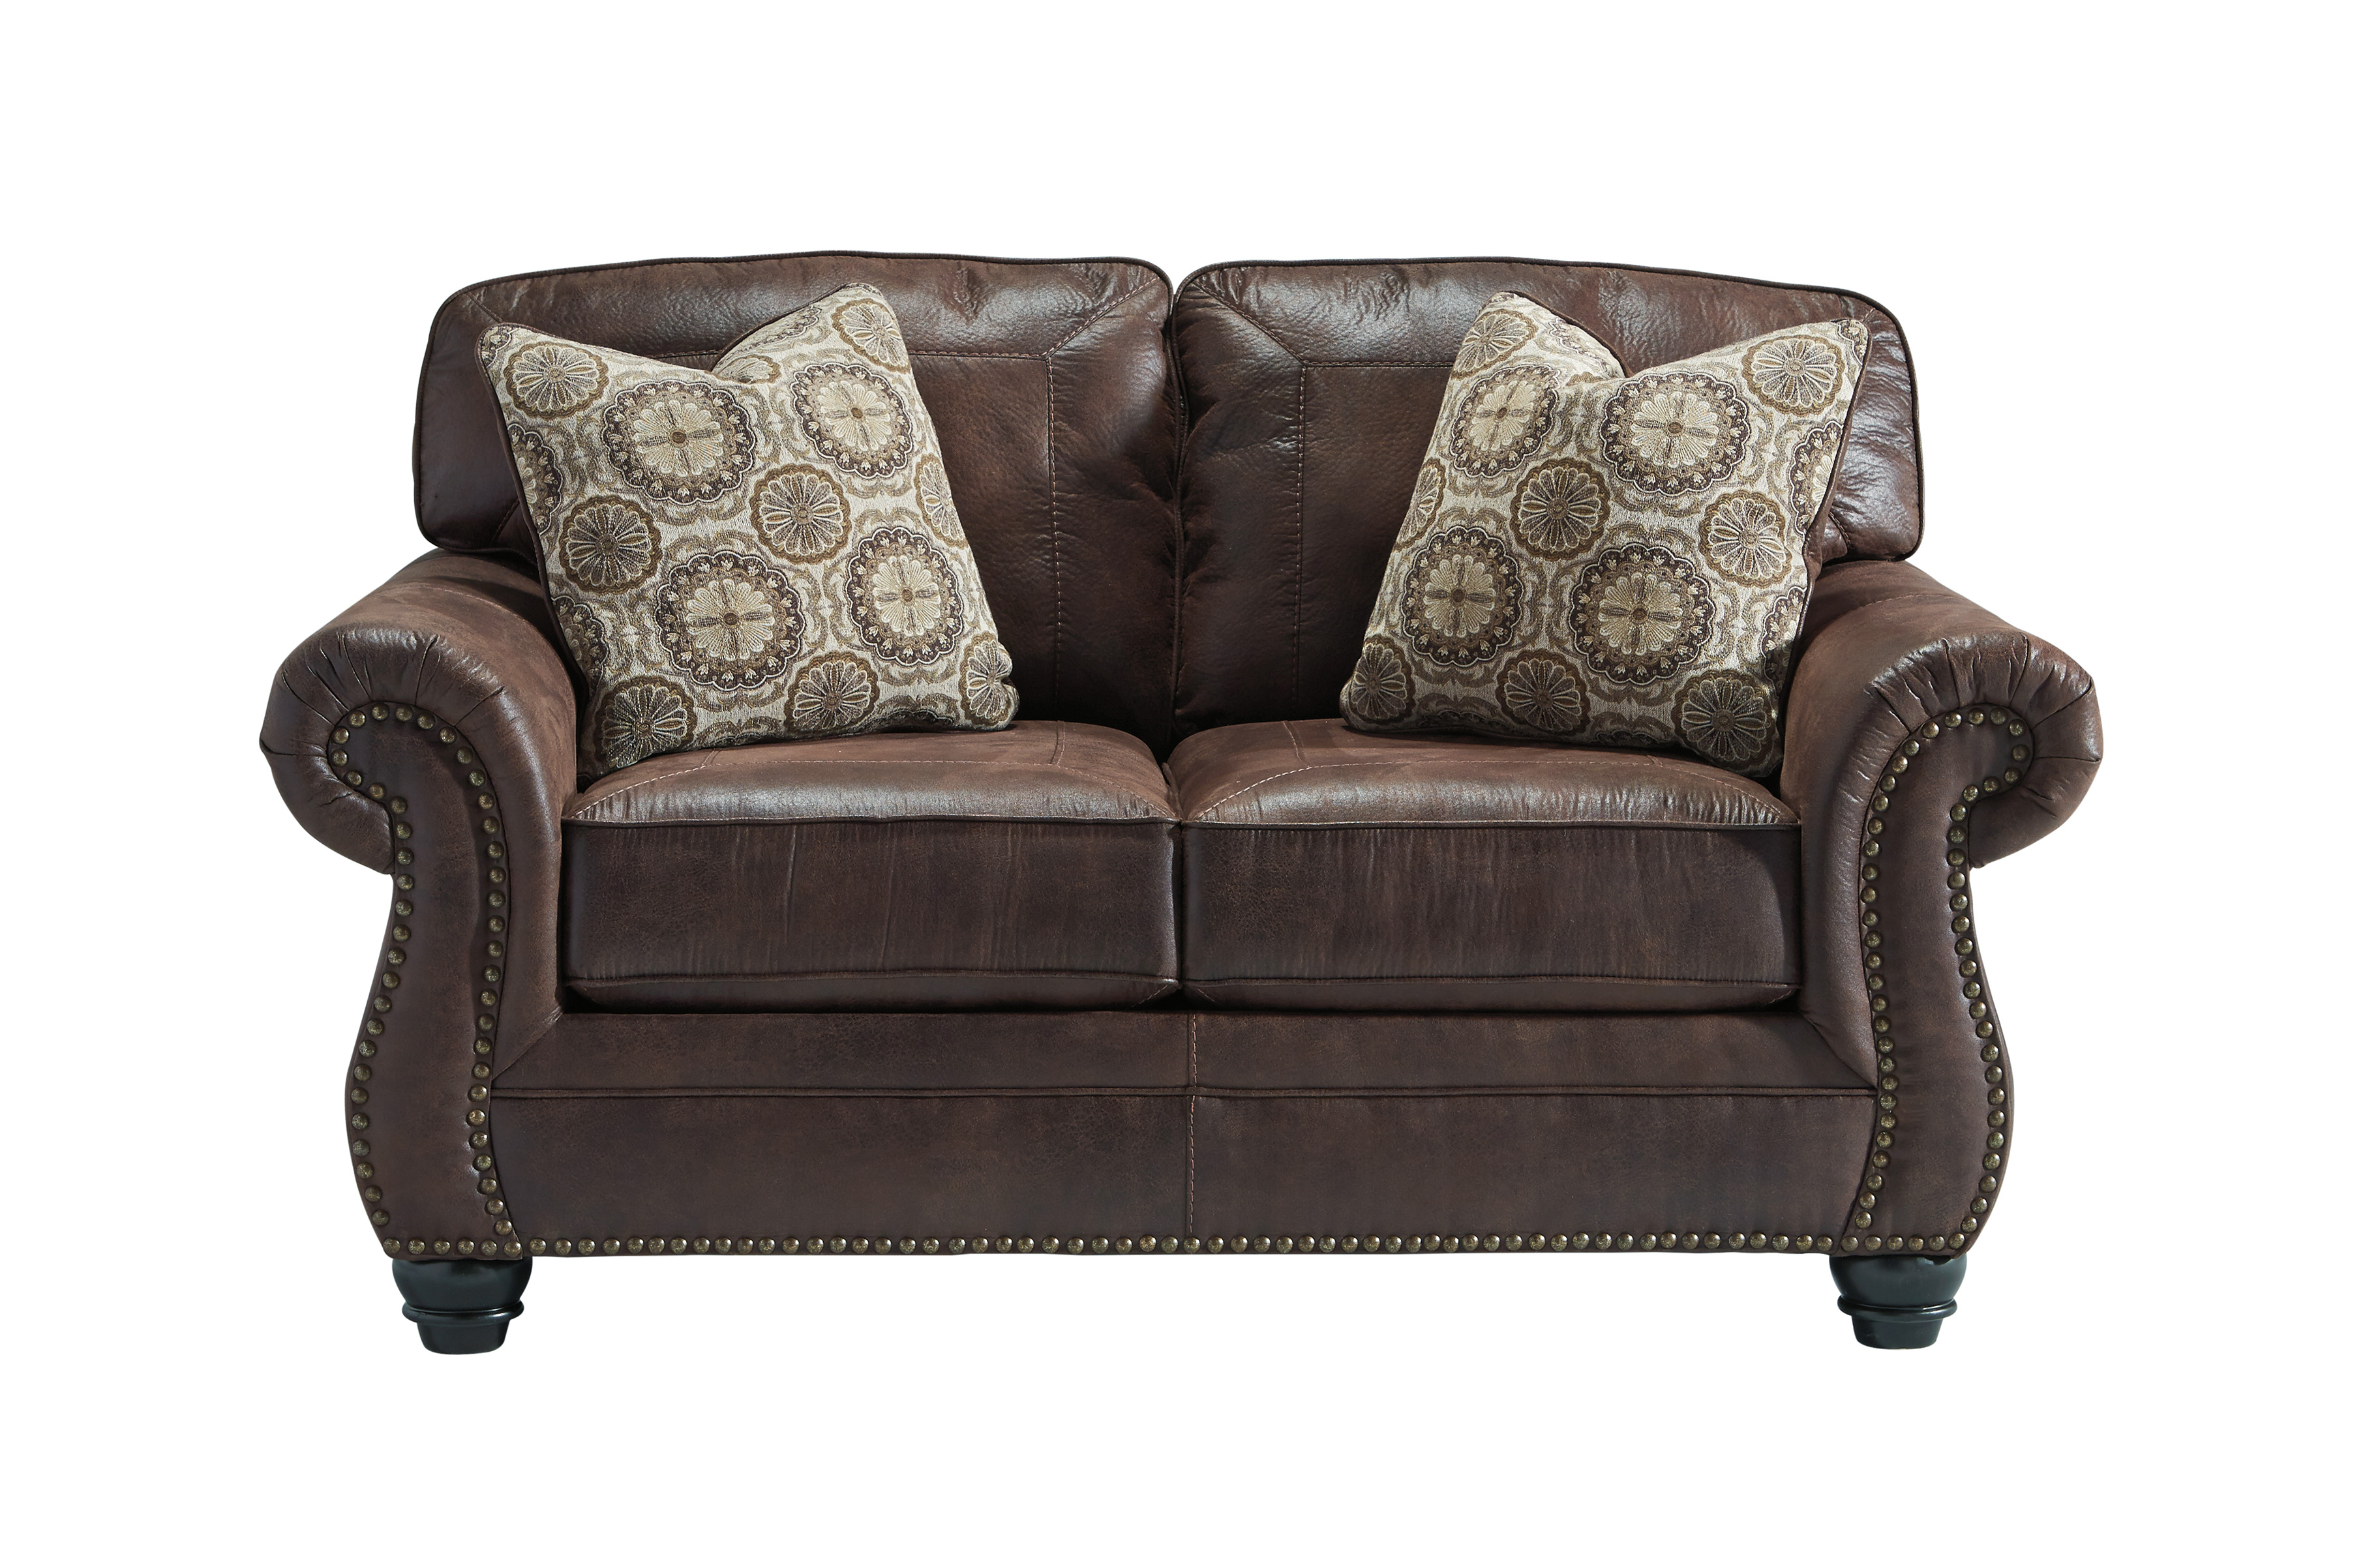 Benchcraft Breville Loveseat Espresso Harrington Home Furniture